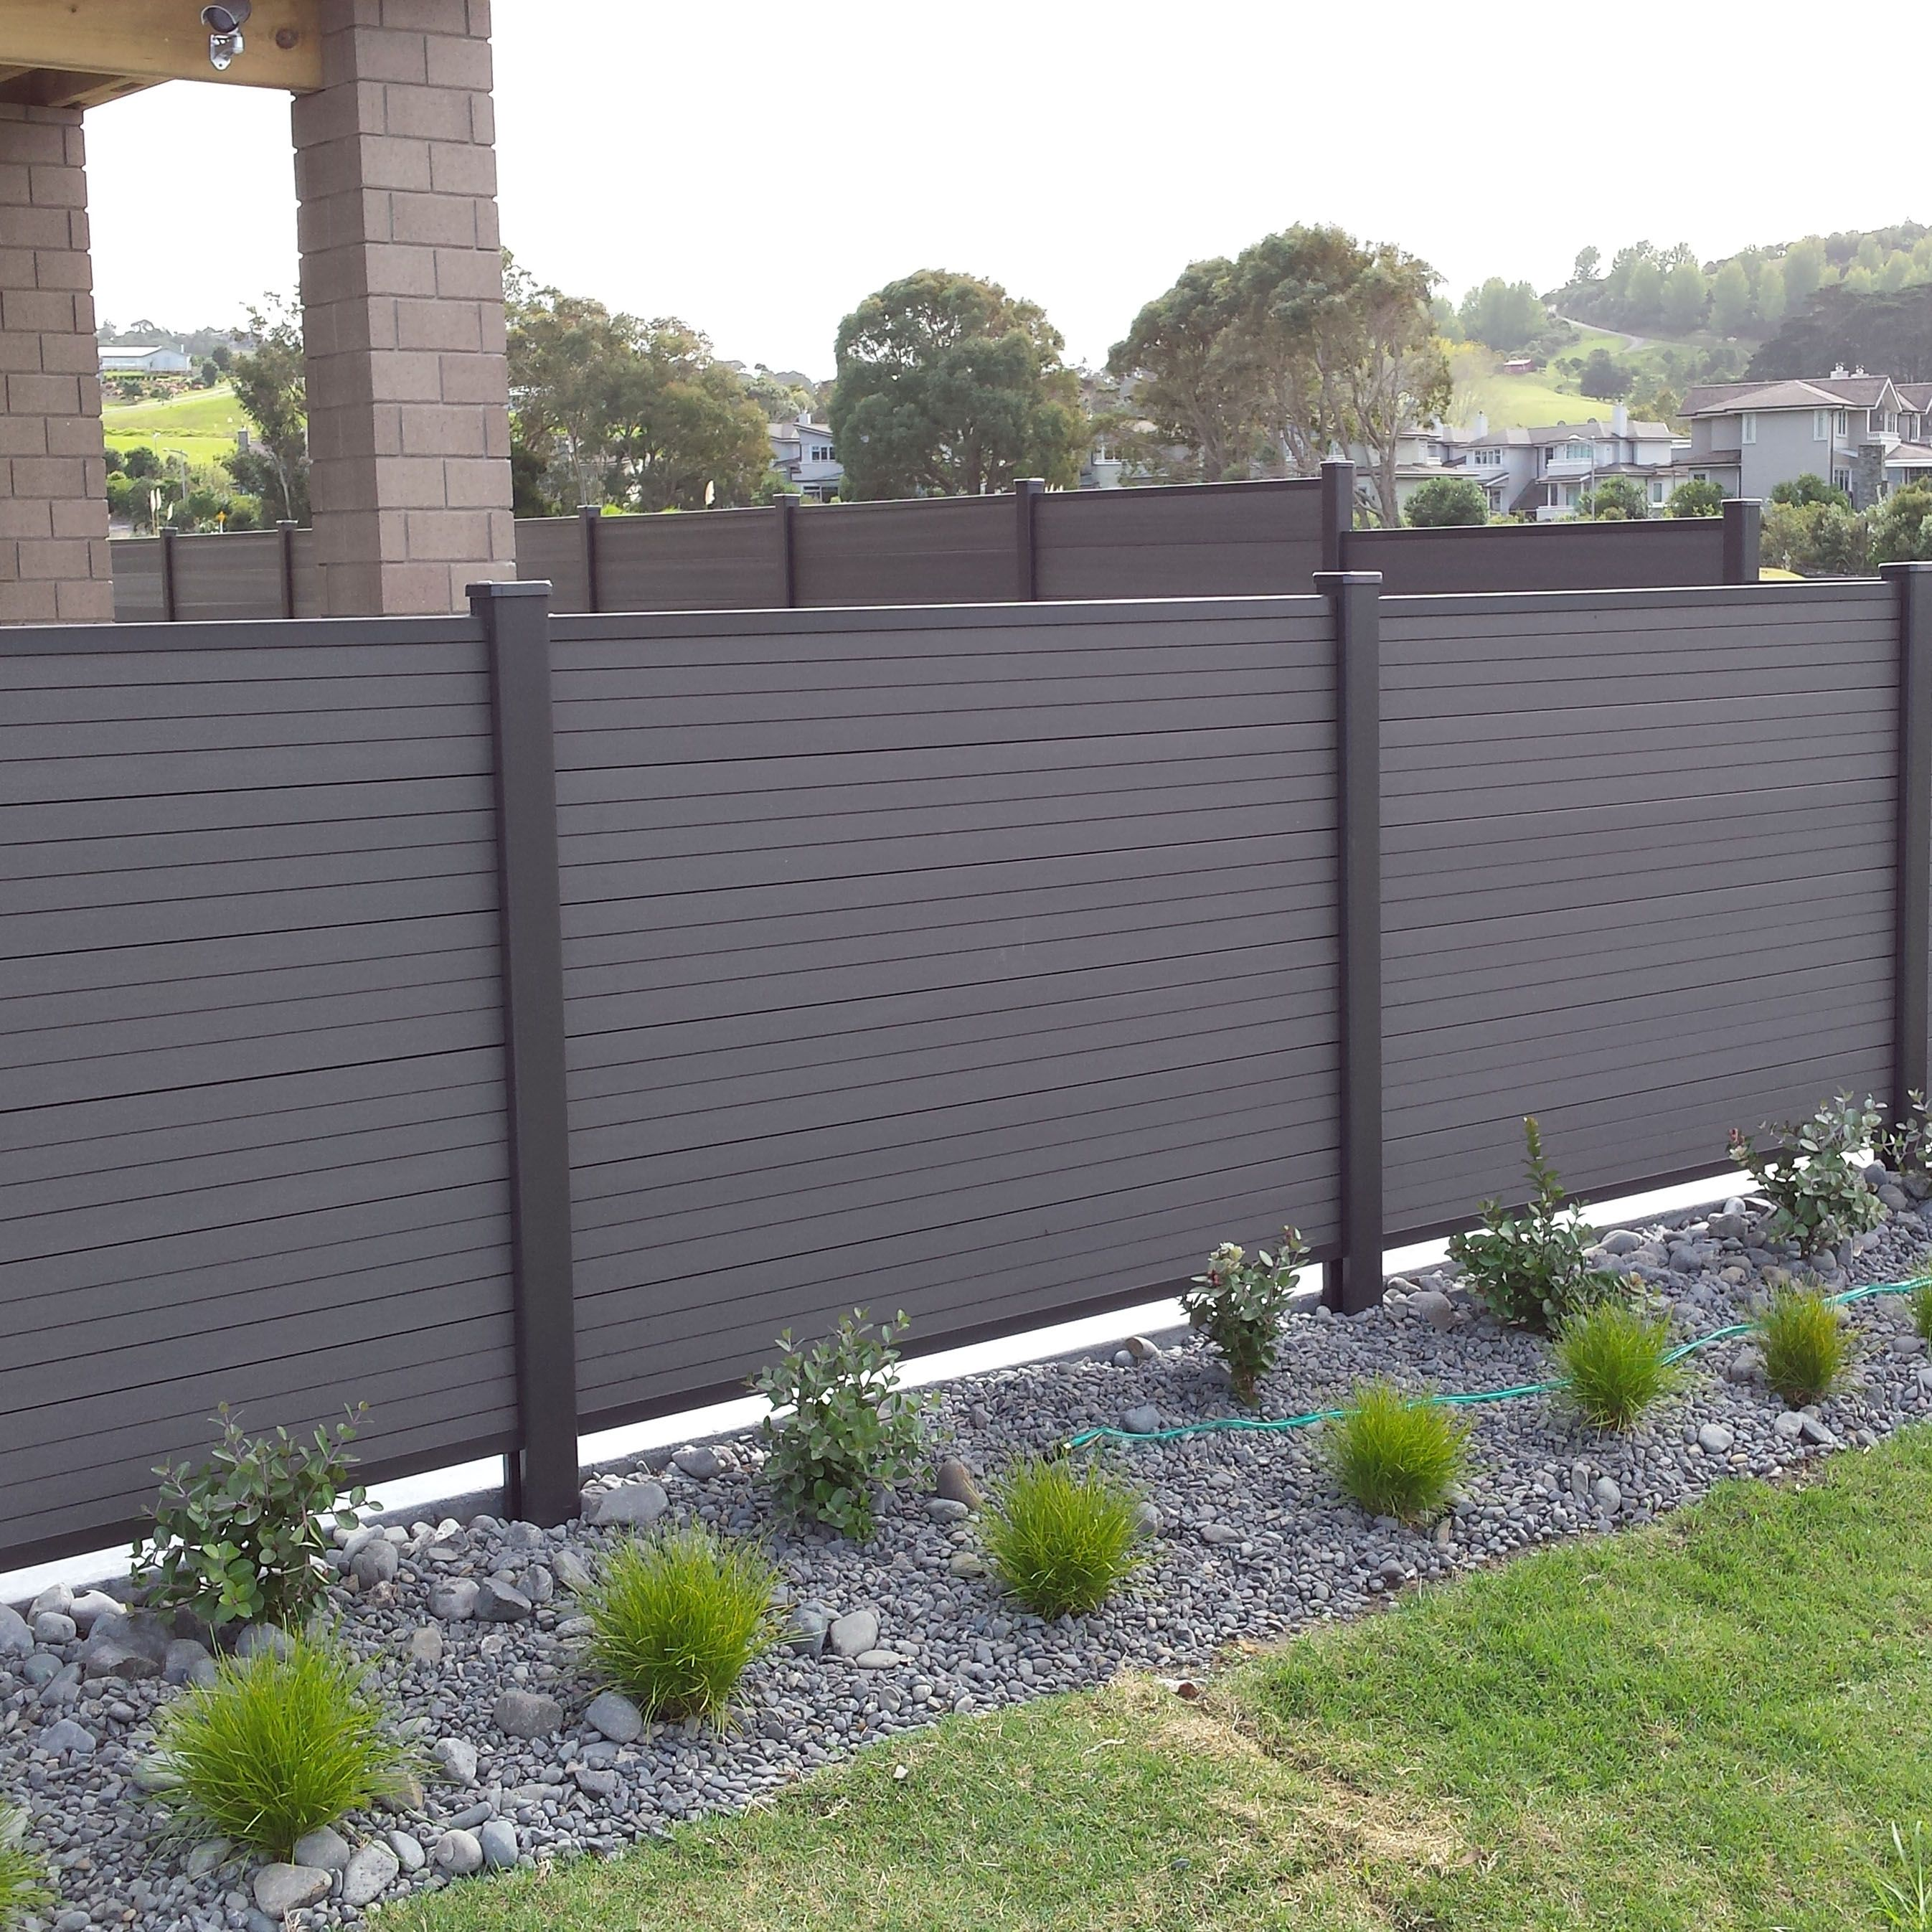 Long life wood plastic fence the average cost for composite long life wood plastic fence the average cost for composite fence baanklon Gallery